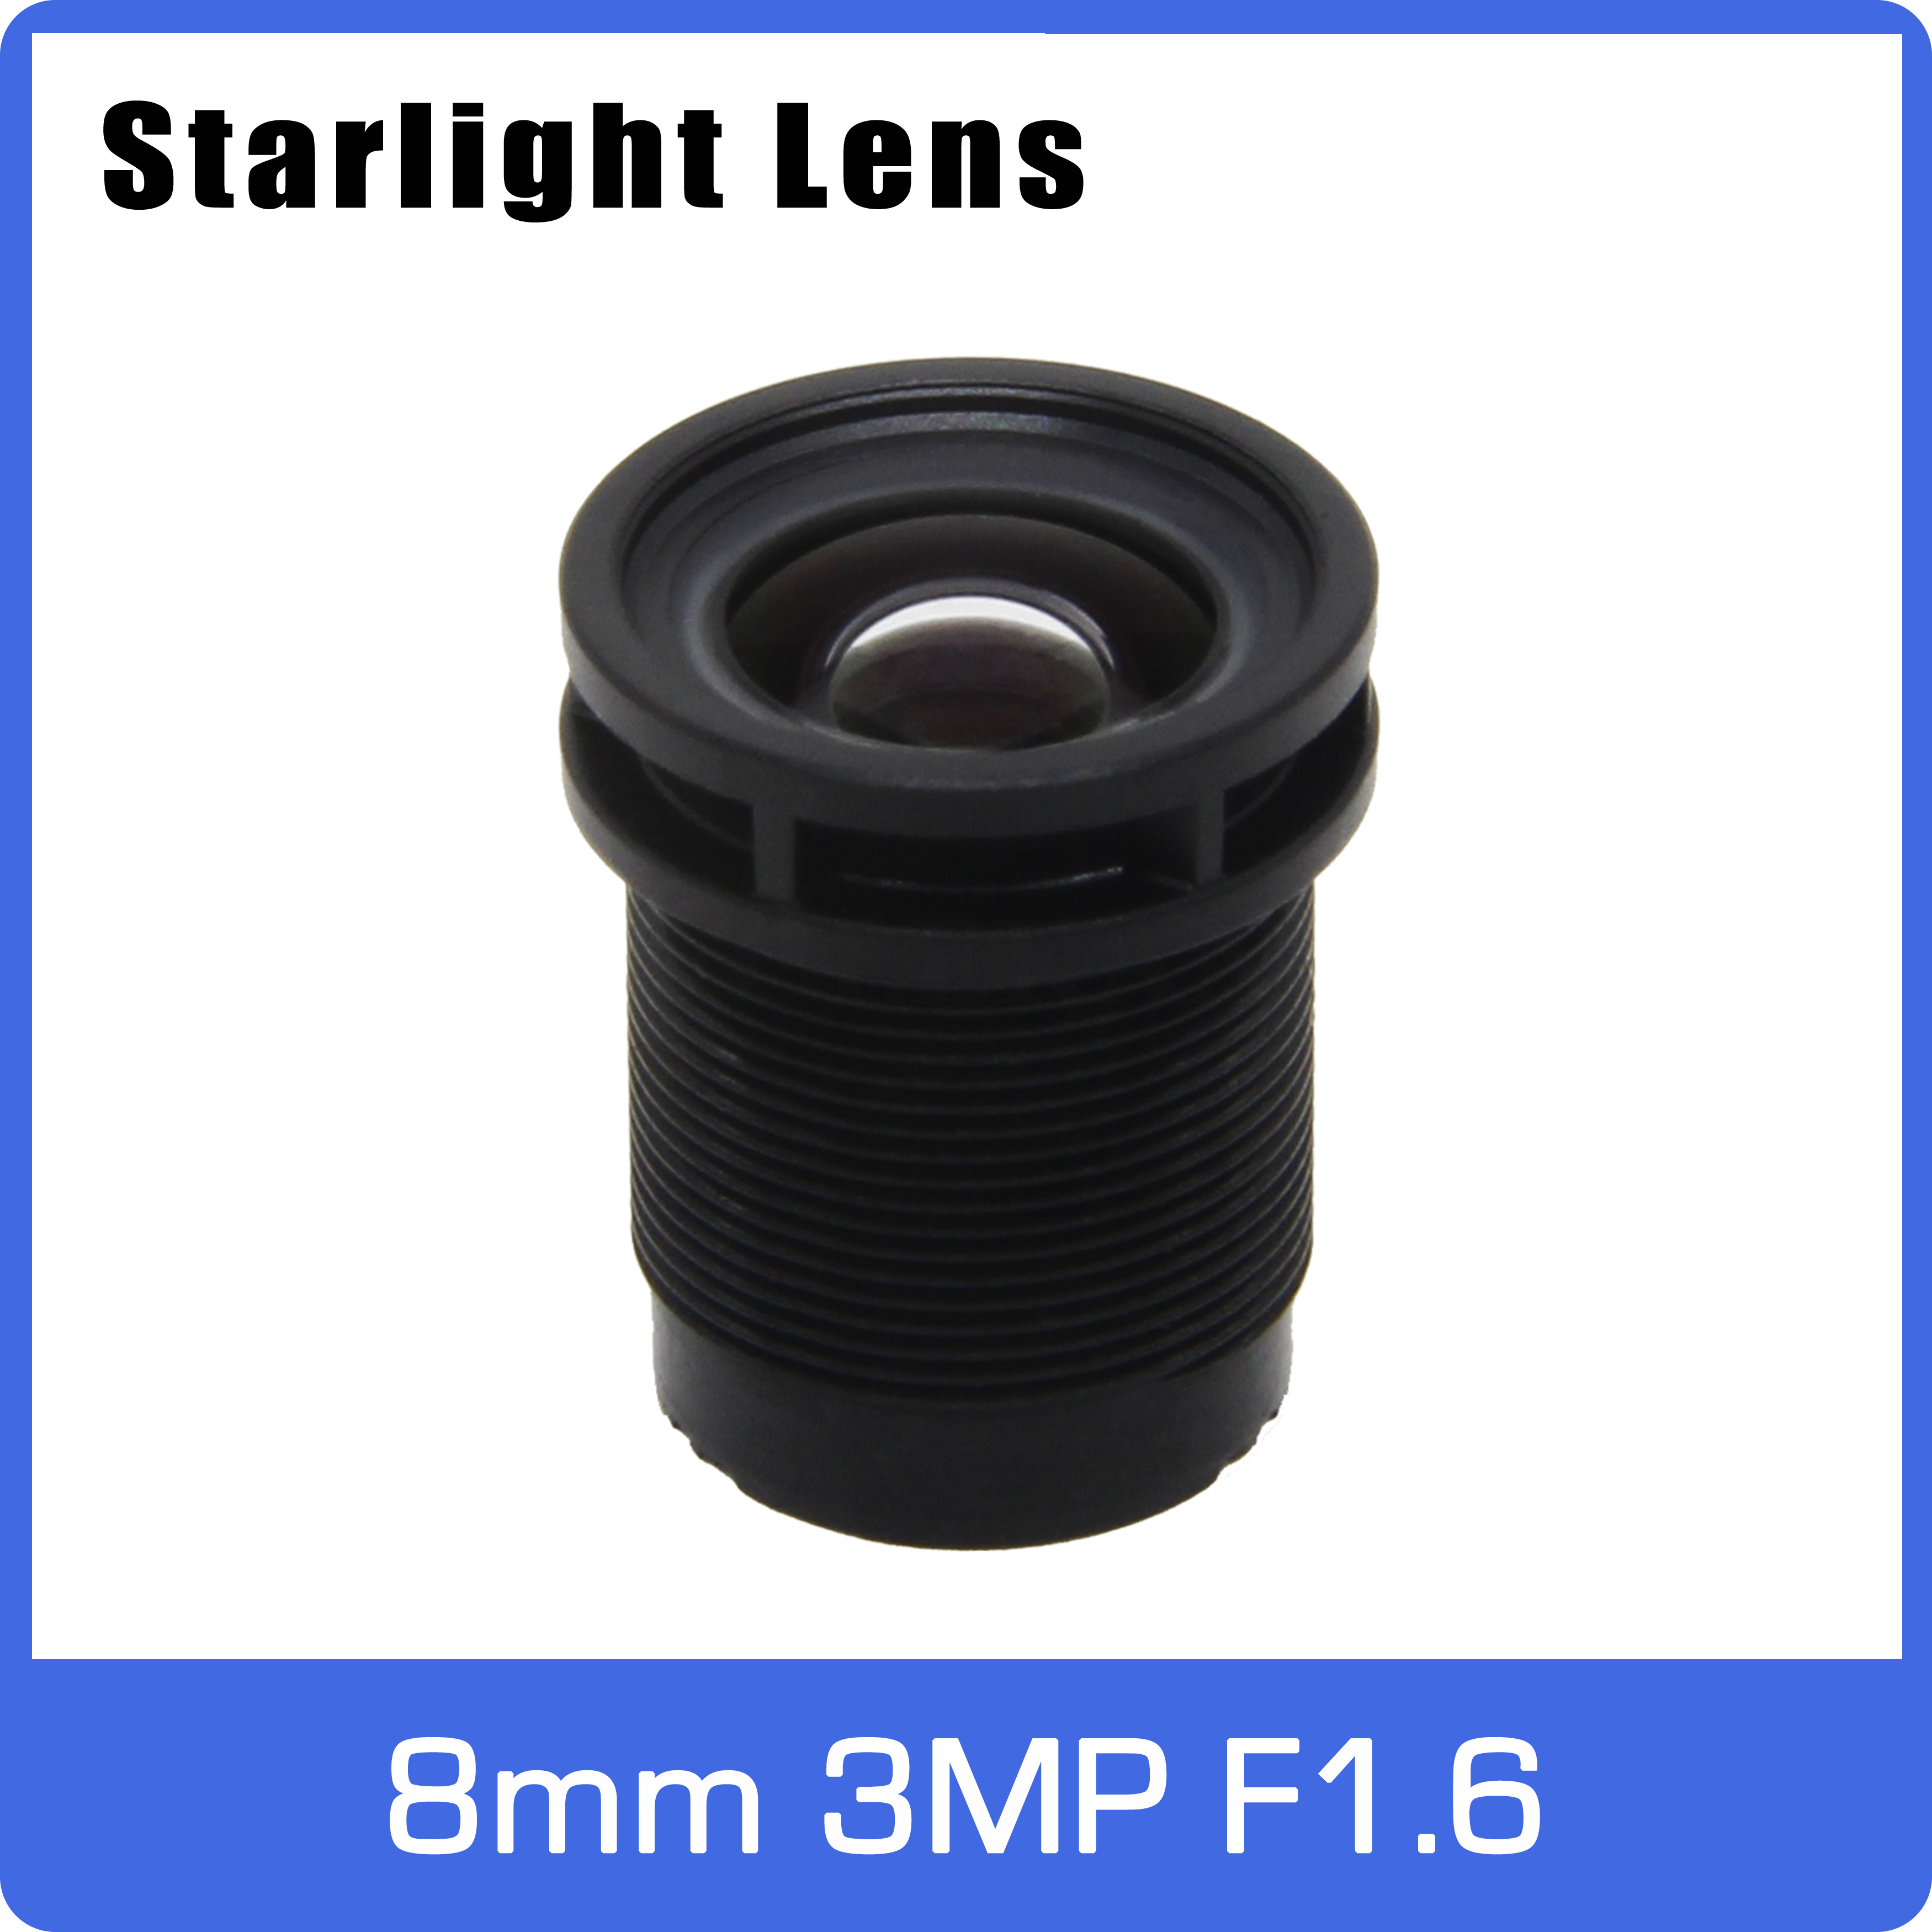 Starlight Lens 3MP 8mm Fixed Aperture F1.6 Big Angle For SONY IMX290/291/307/327 Low Light CCTV AHD IP Camera Free Shipping